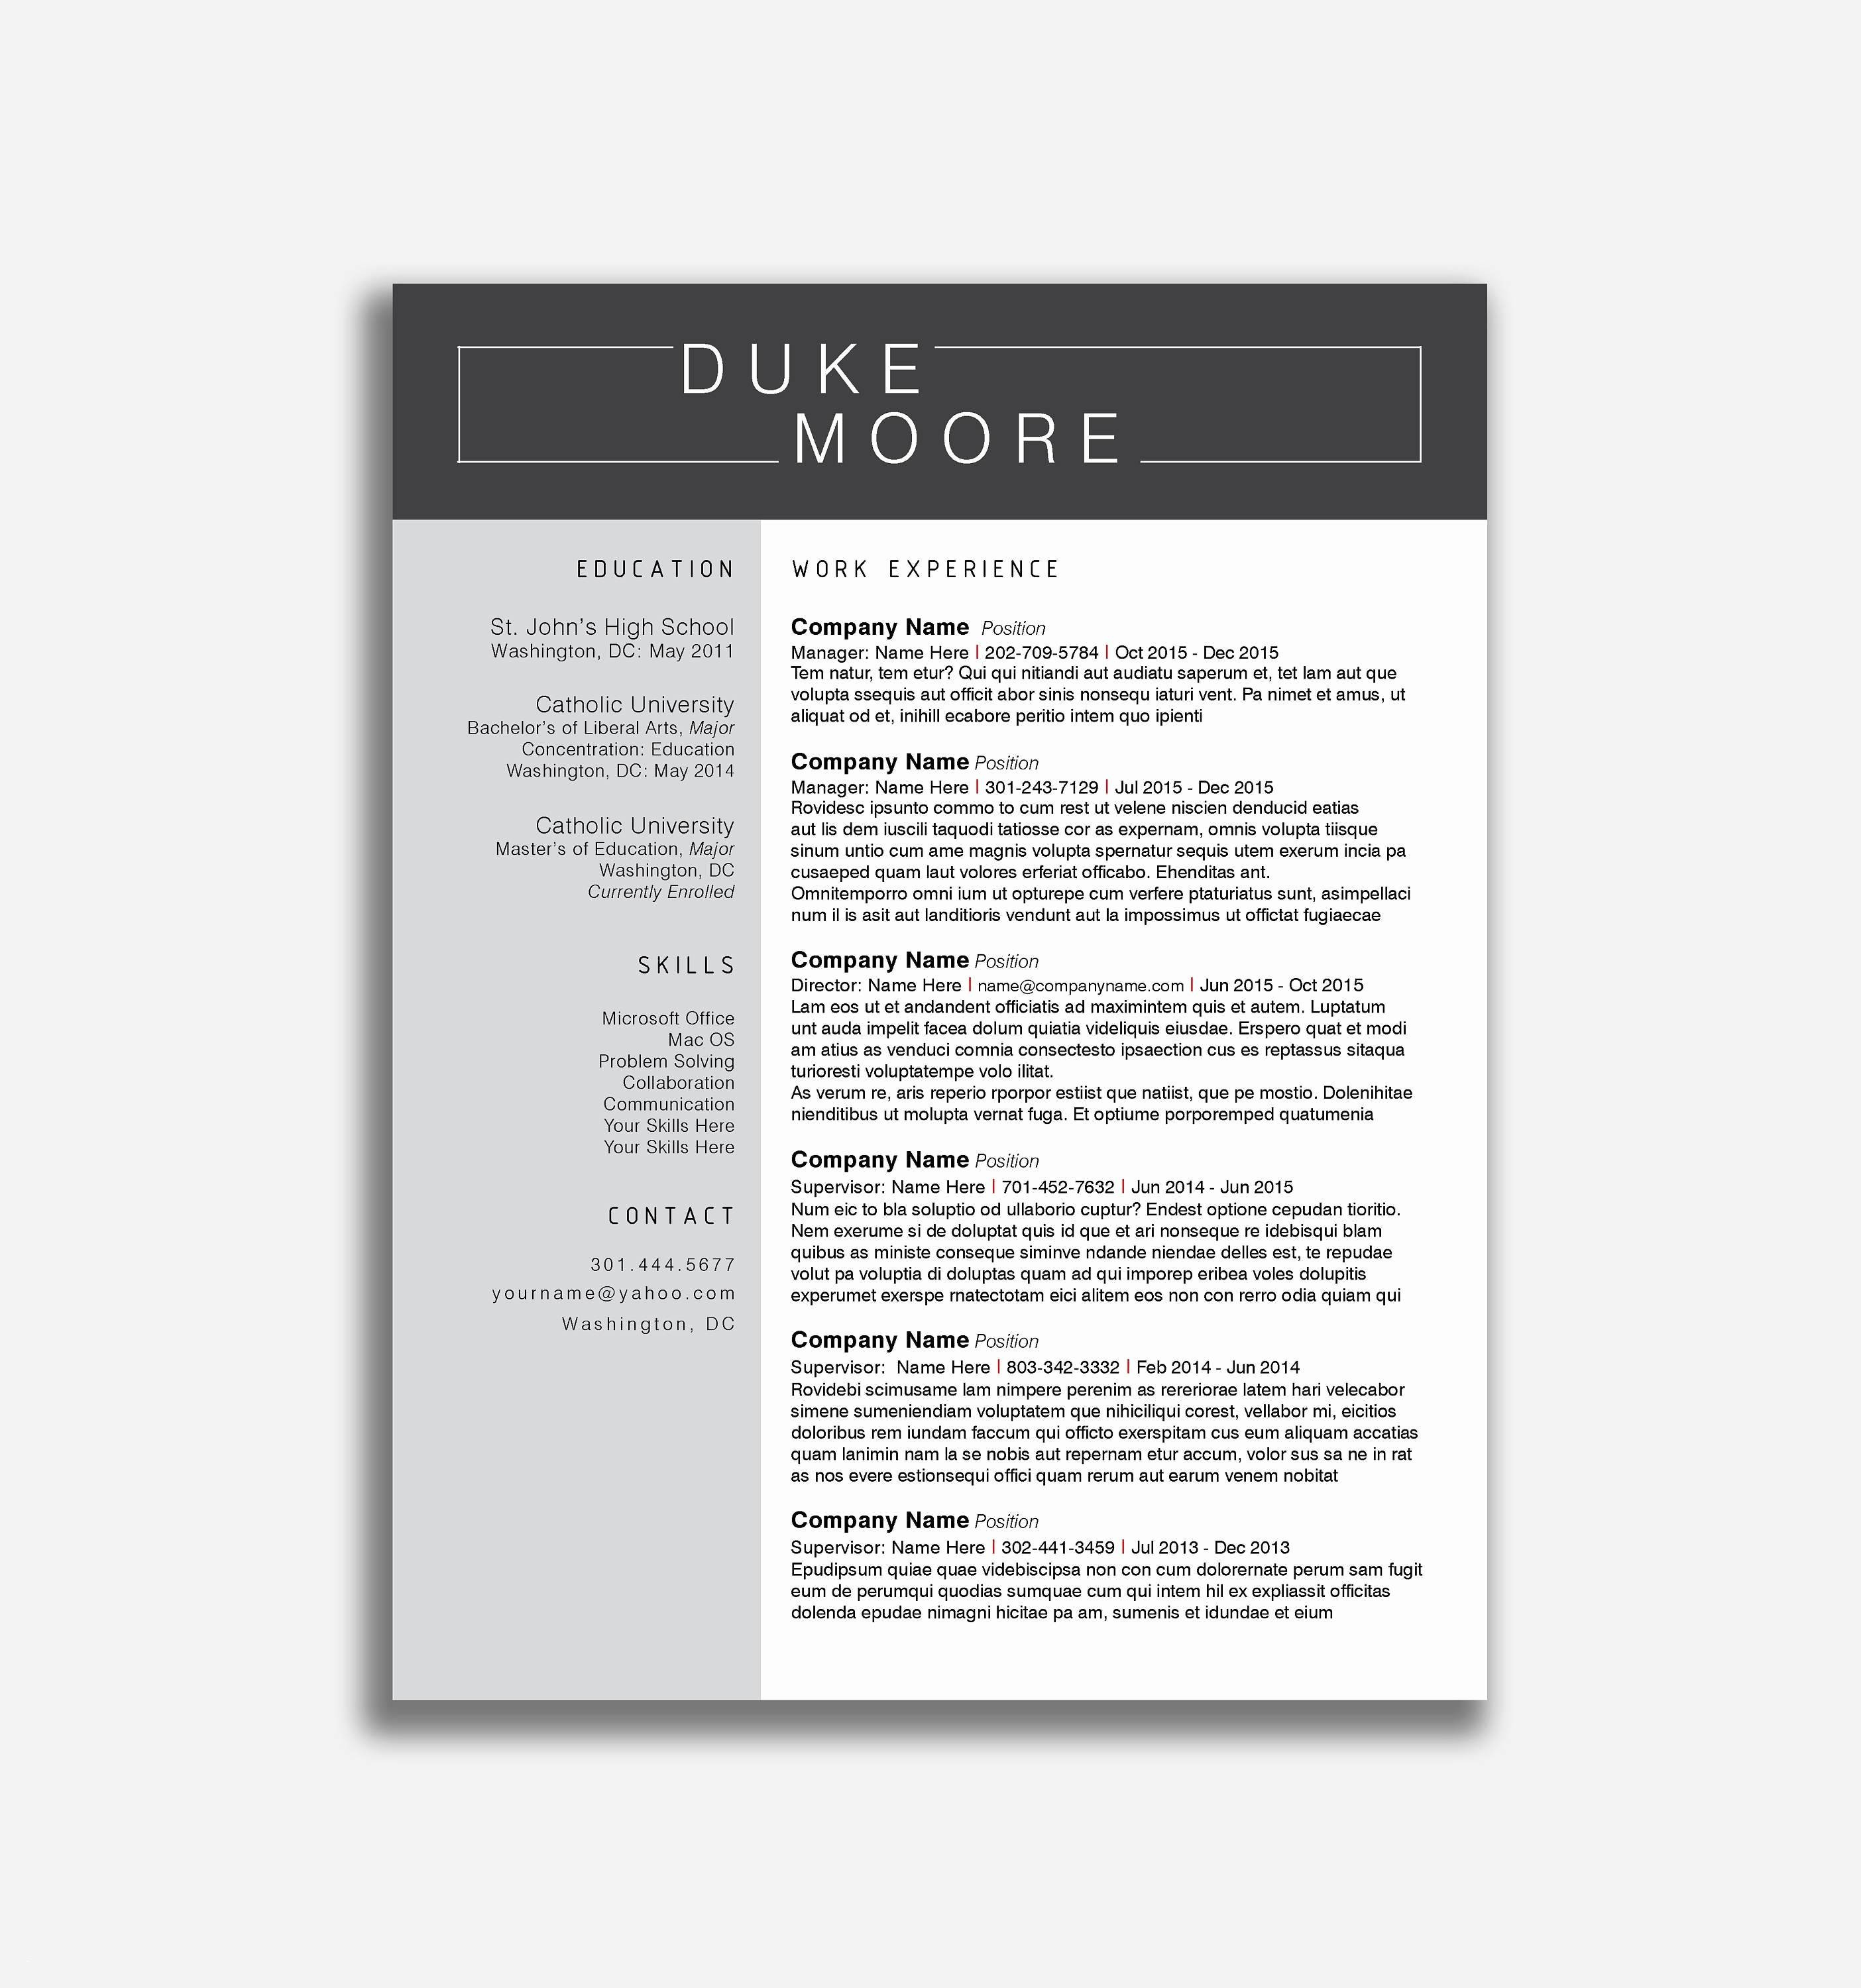 Free Acting Resume Template Download - Simple Resume Template Download Awesome Acting Resume format New